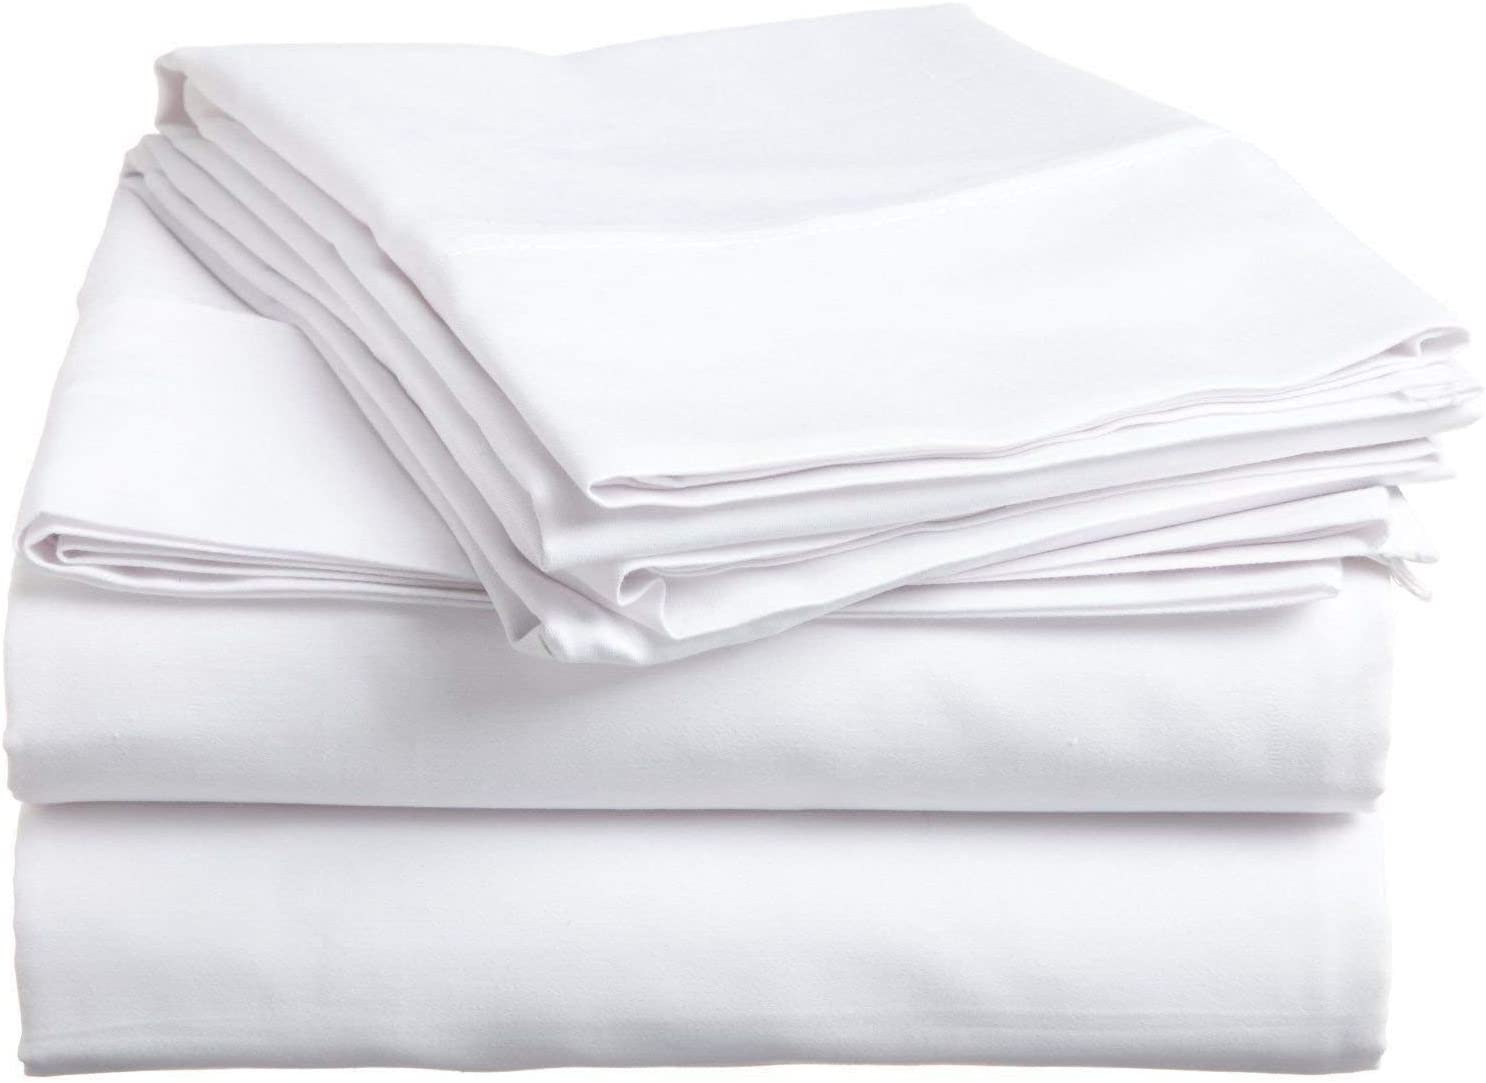 "Ethereal Bedding 600-Thread Count Premium Quality Bed Sheets Italian Finish 100% Egyptian Cotton 4-PCs - Sheet Set, Fits Mattress Upto 17""-20"" Inch Deep Pockets Solid Pattern (Queen, White)"